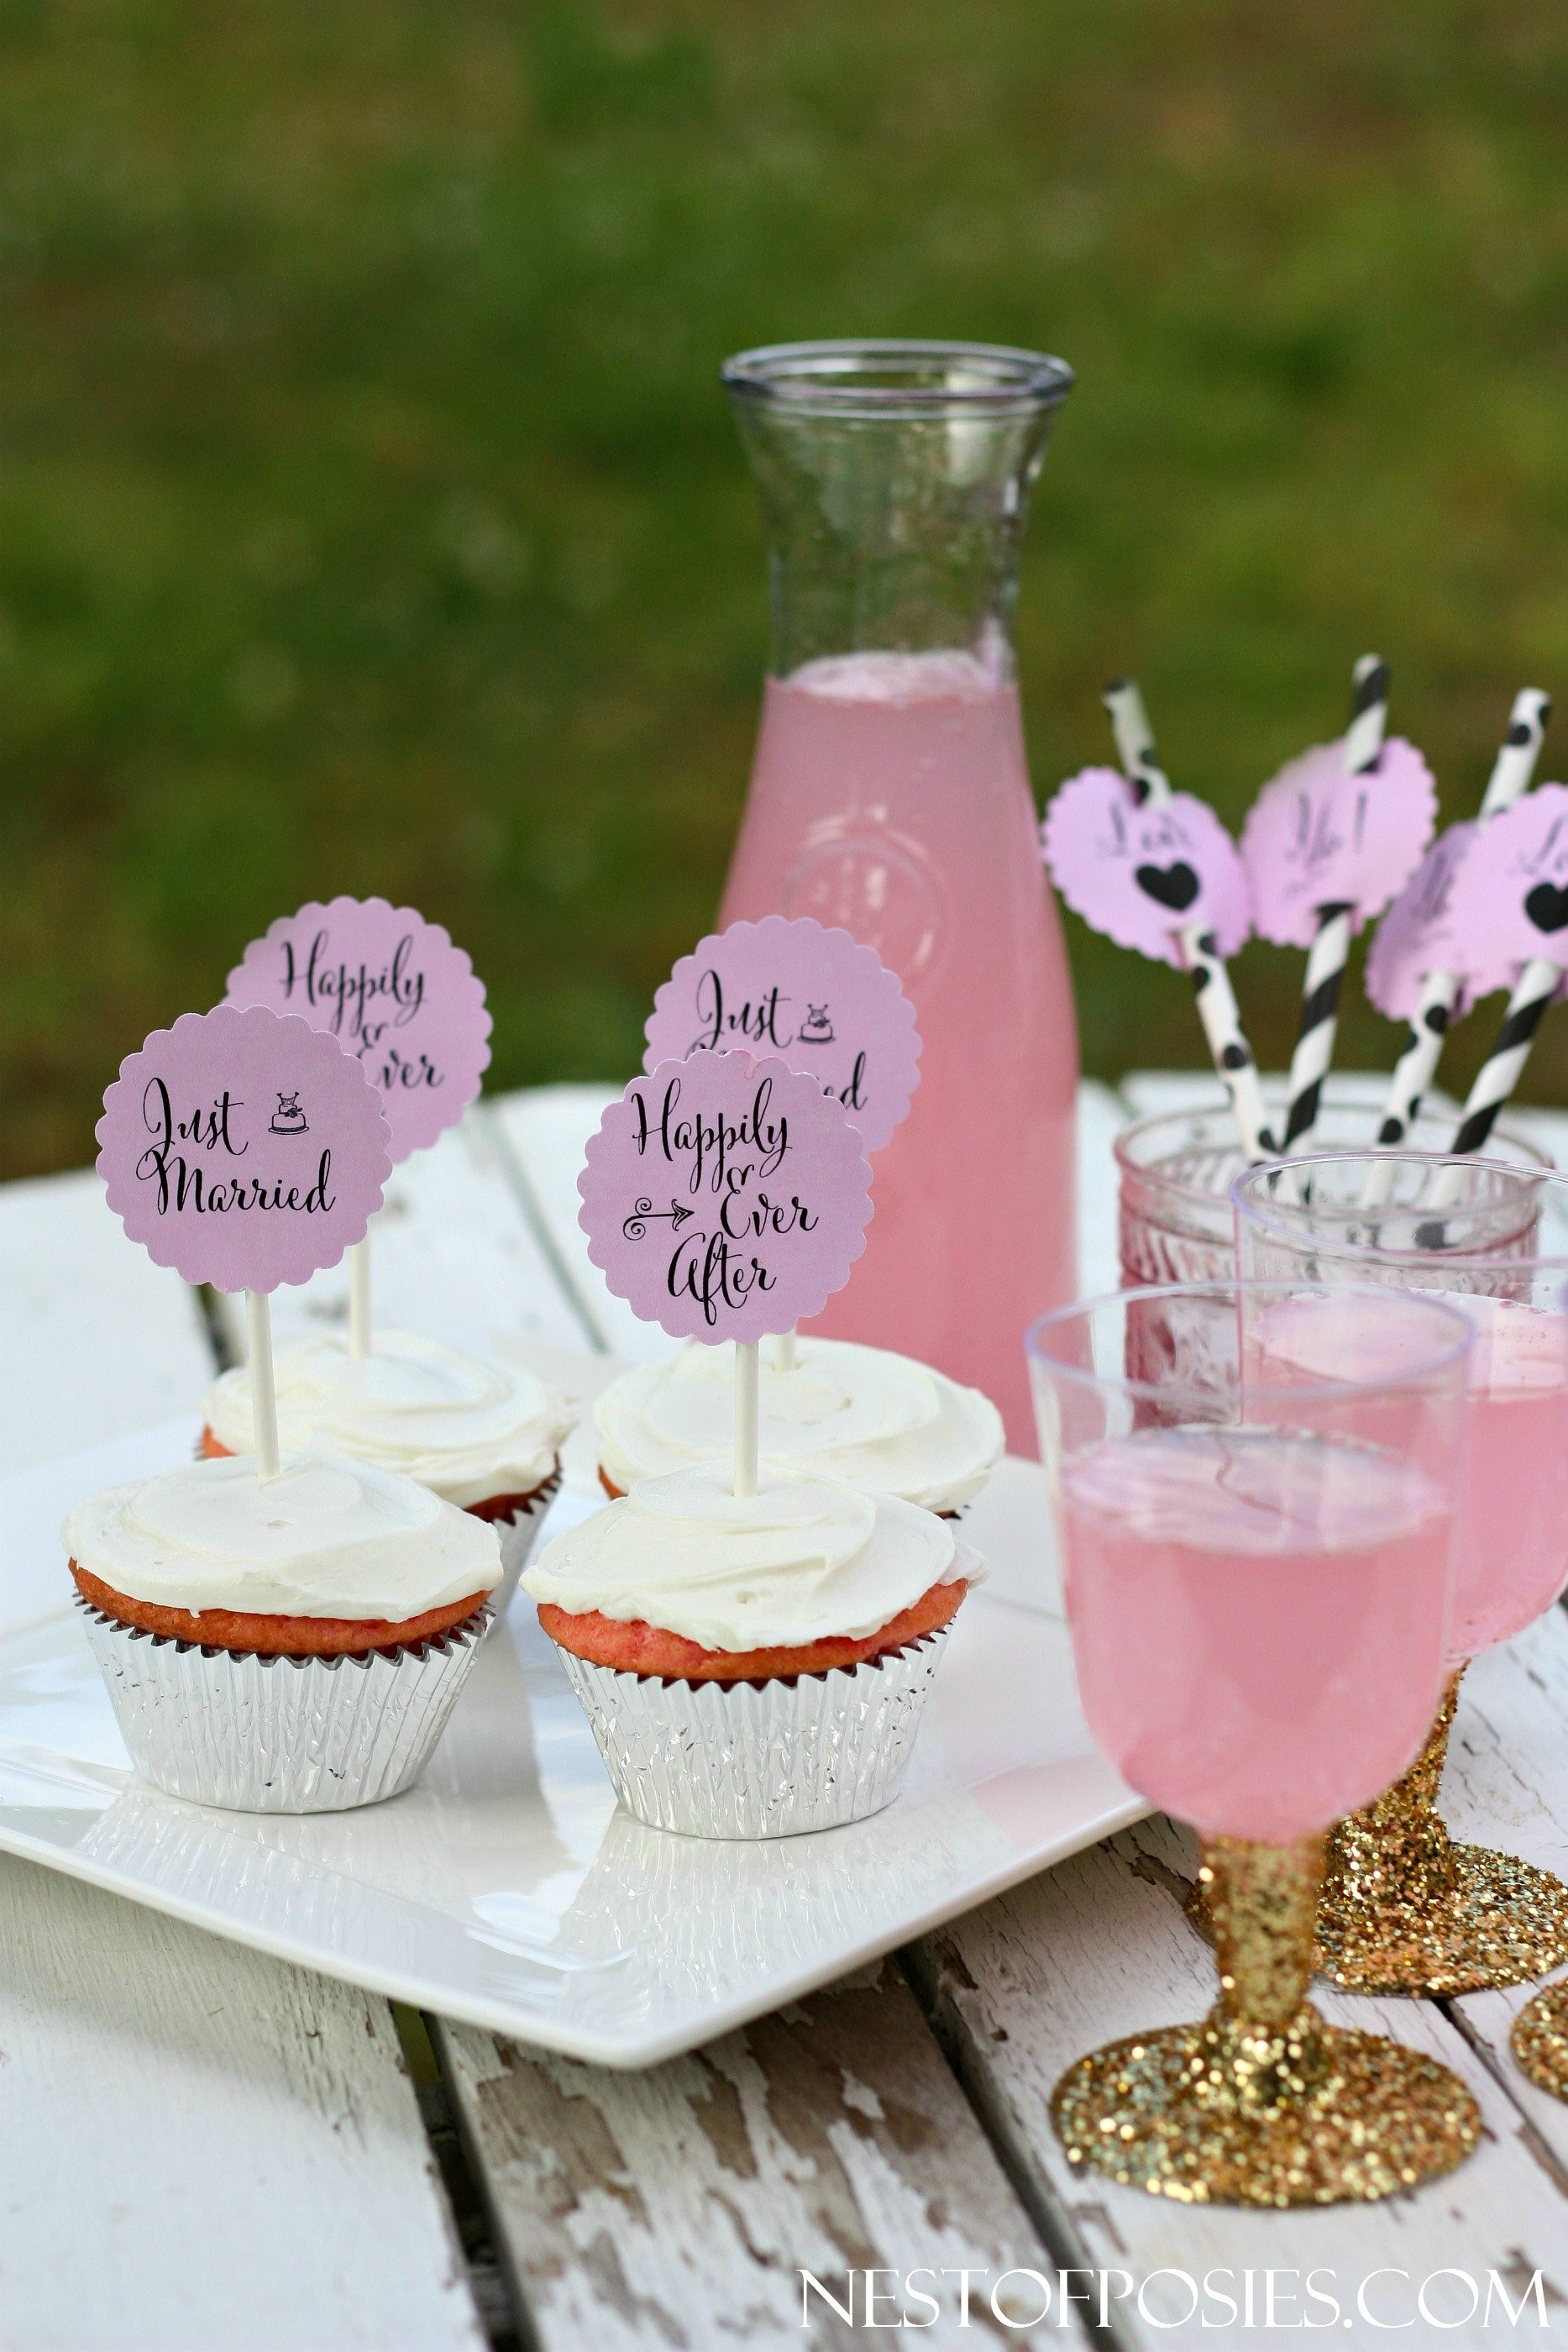 10 Beautiful Cupcake Ideas For Bridal Shower or bridal shower cupcake toppers 2020